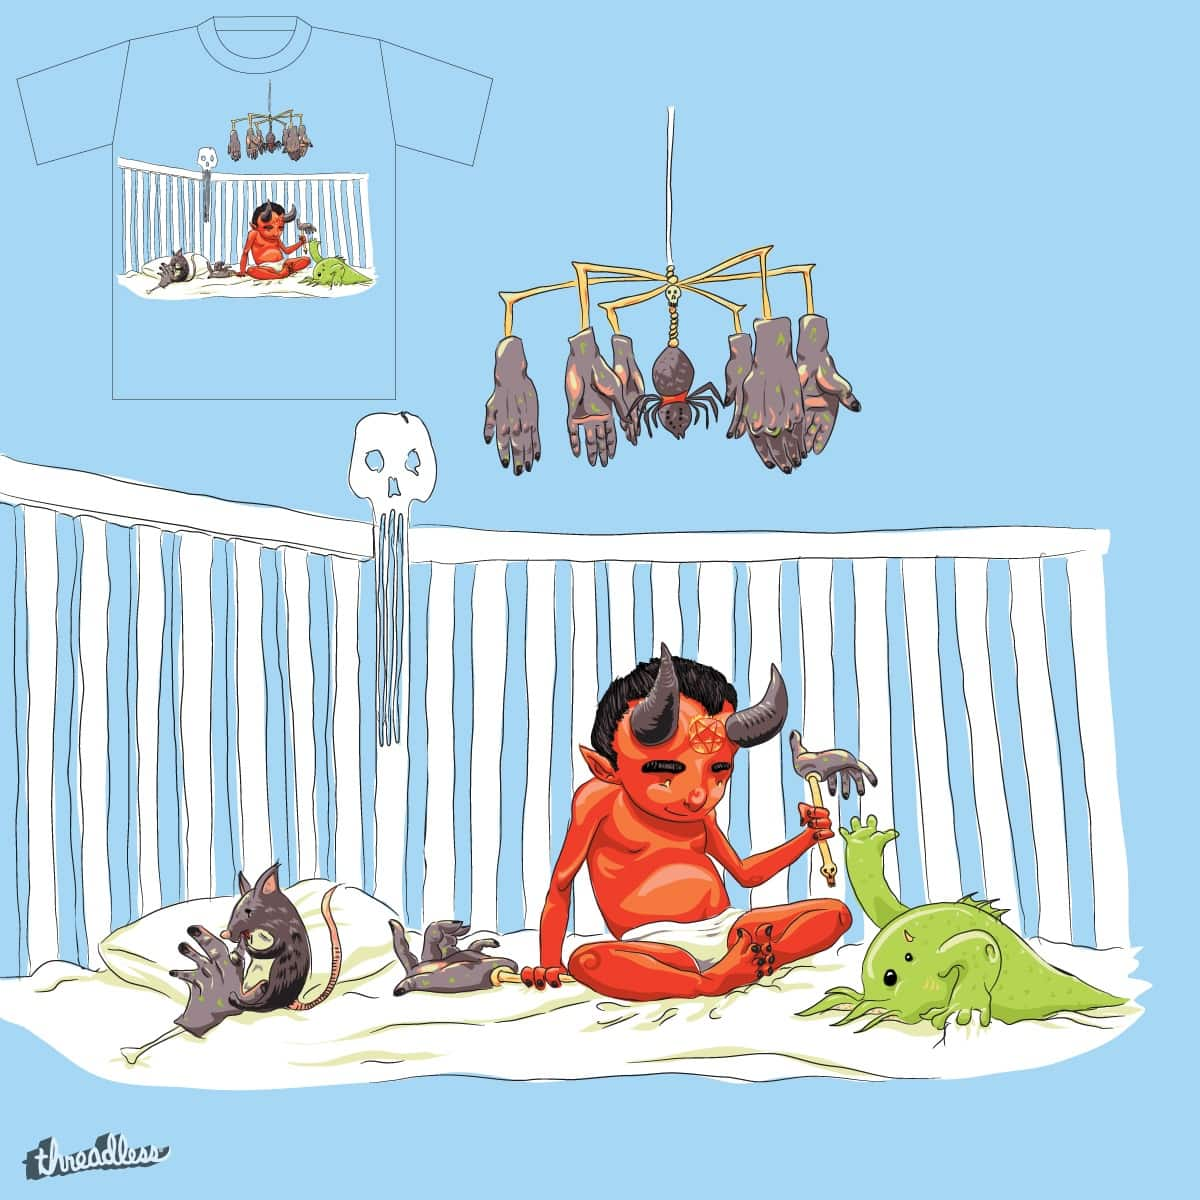 Idle Hands... by wullagaru on Threadless